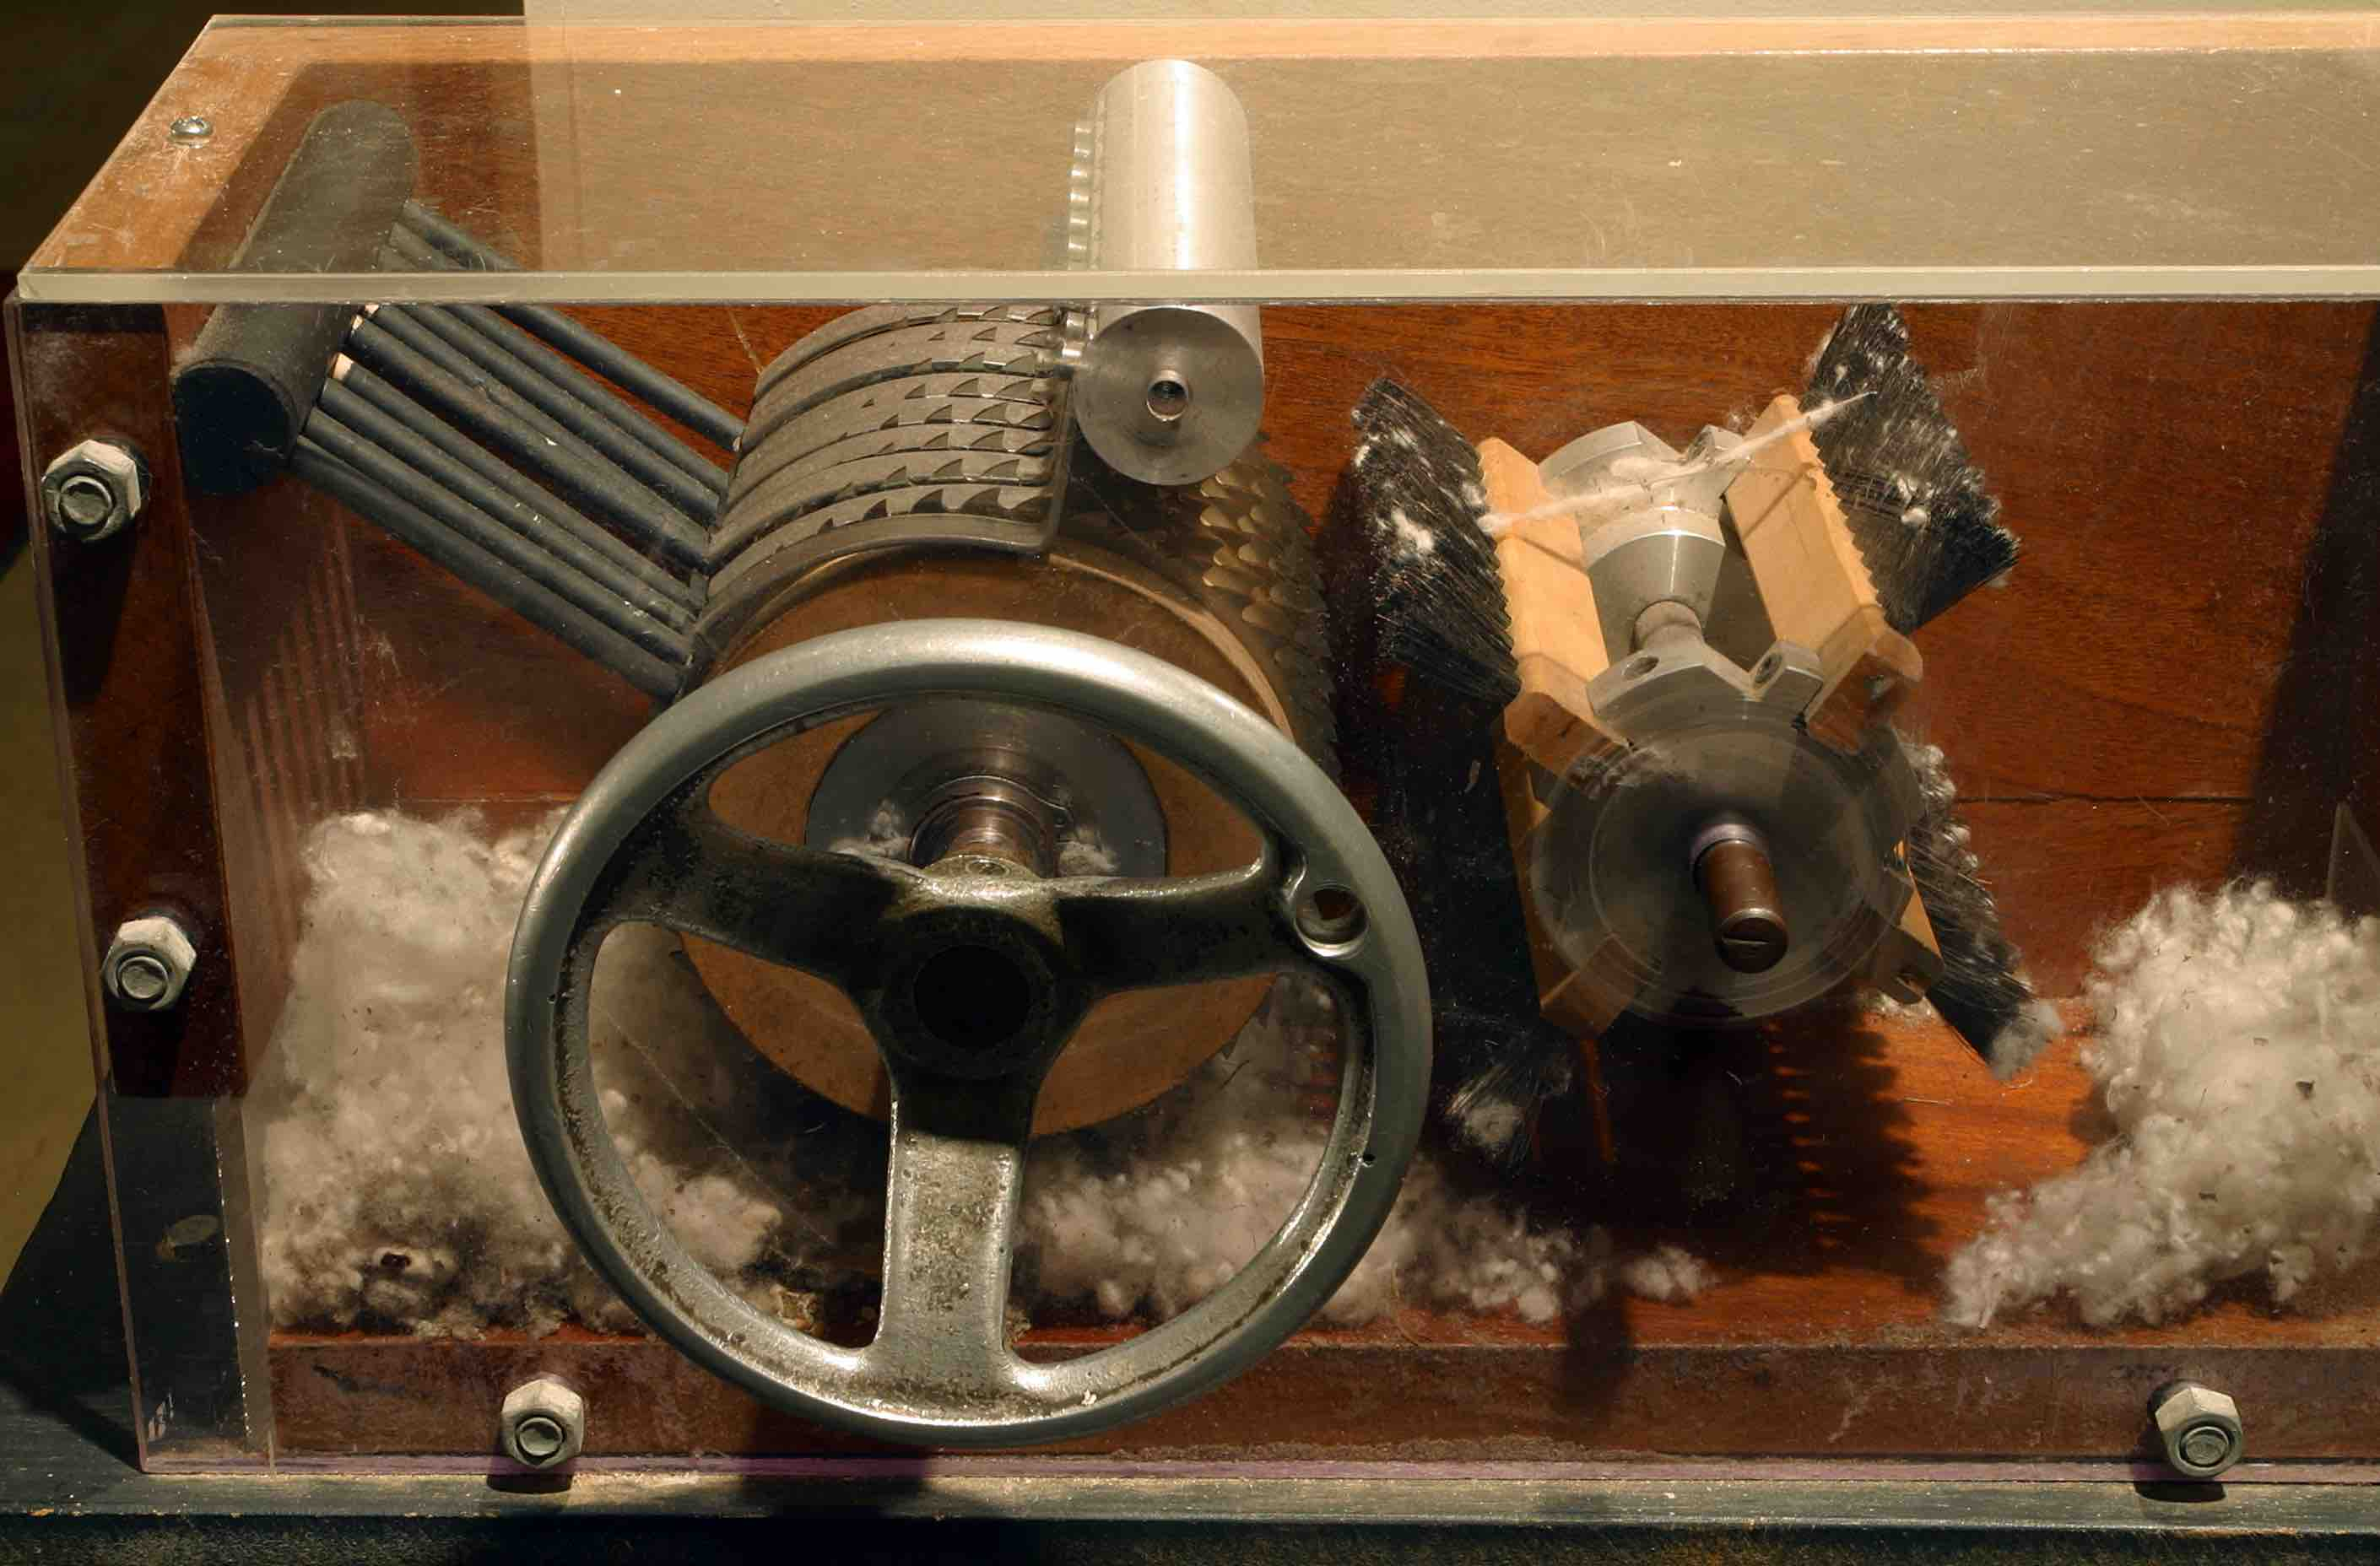 The cotton gin has multiple gears in it with fairly sharp spokes, and a hand-turned wheel. As you feed cotton in on one side, and turn the wheel, it pulls the cotton through the gears/spokes, and separates out seeds